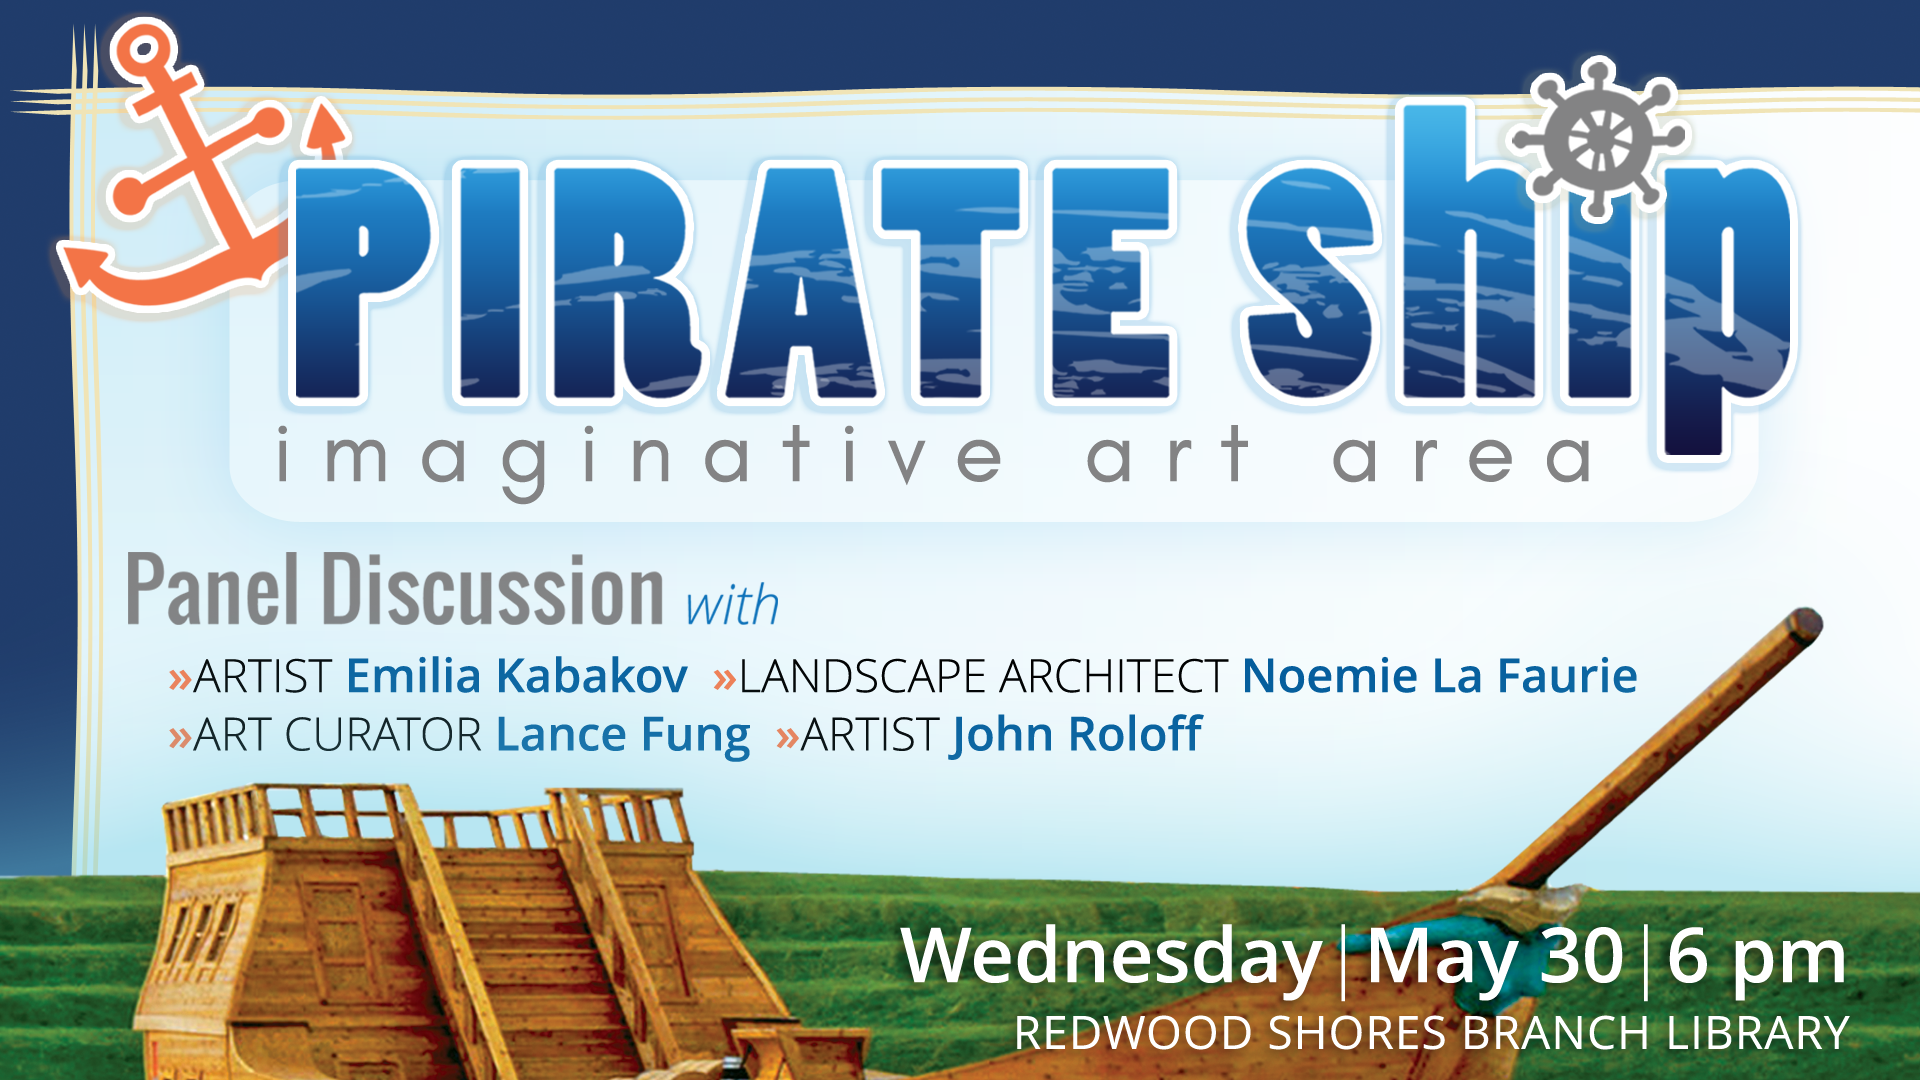 ARRR! Let's Talk About Pirate Ships!